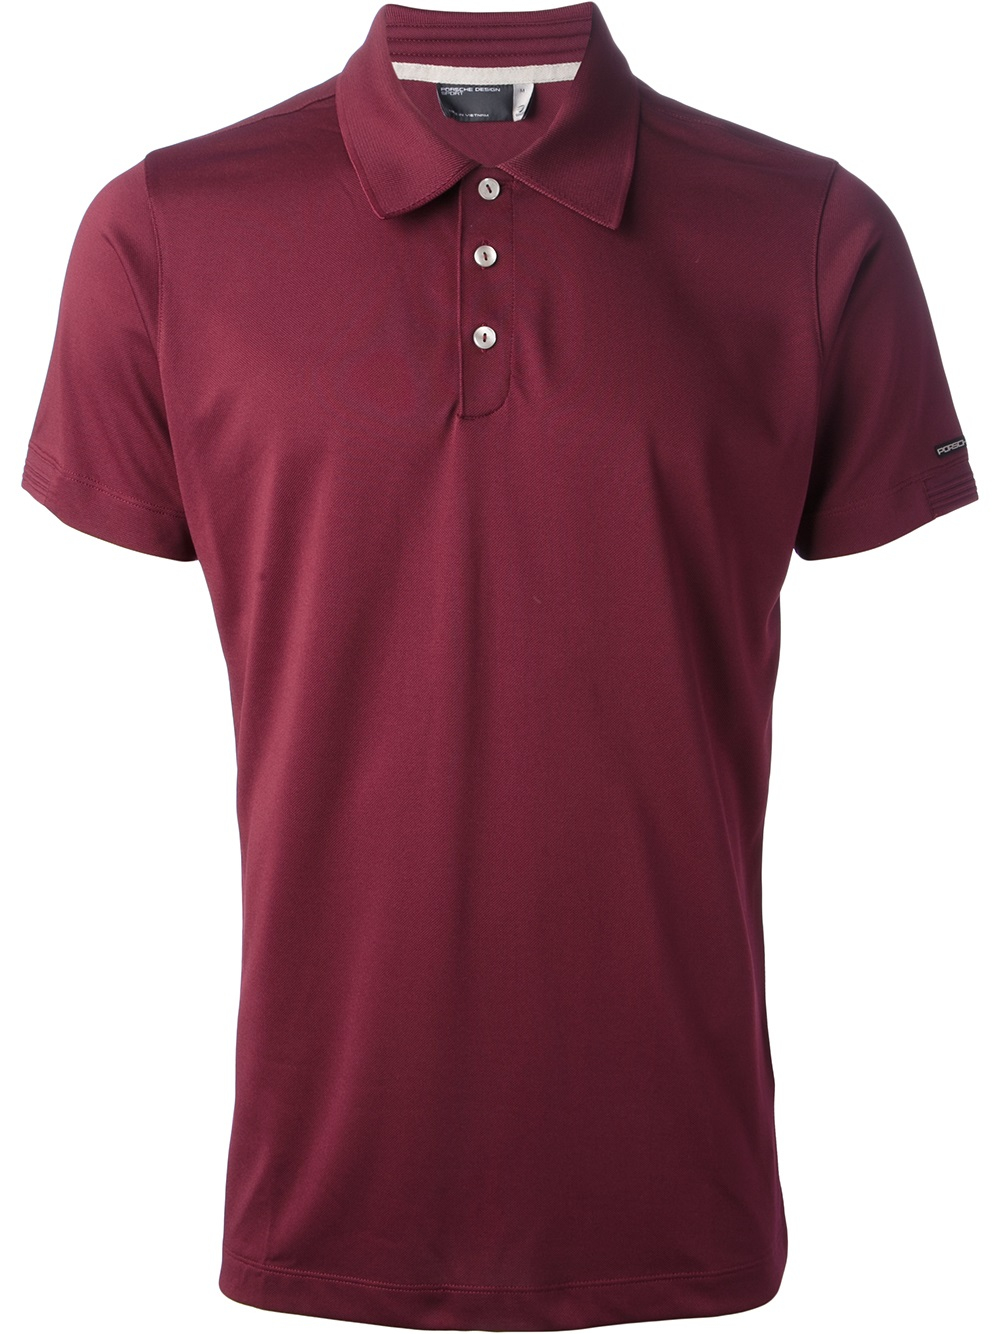 porsche design sport classic jersey polo shirt in red for. Black Bedroom Furniture Sets. Home Design Ideas